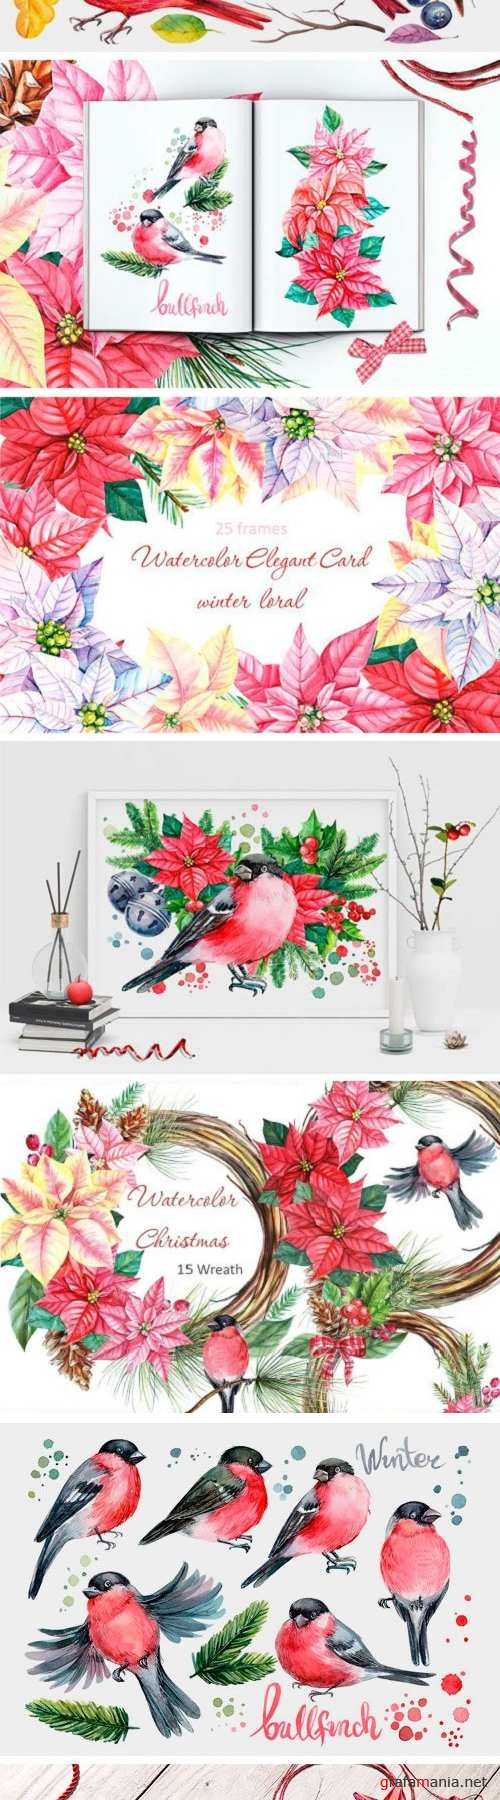 Winter Birds and Floral Illustration - 2010561